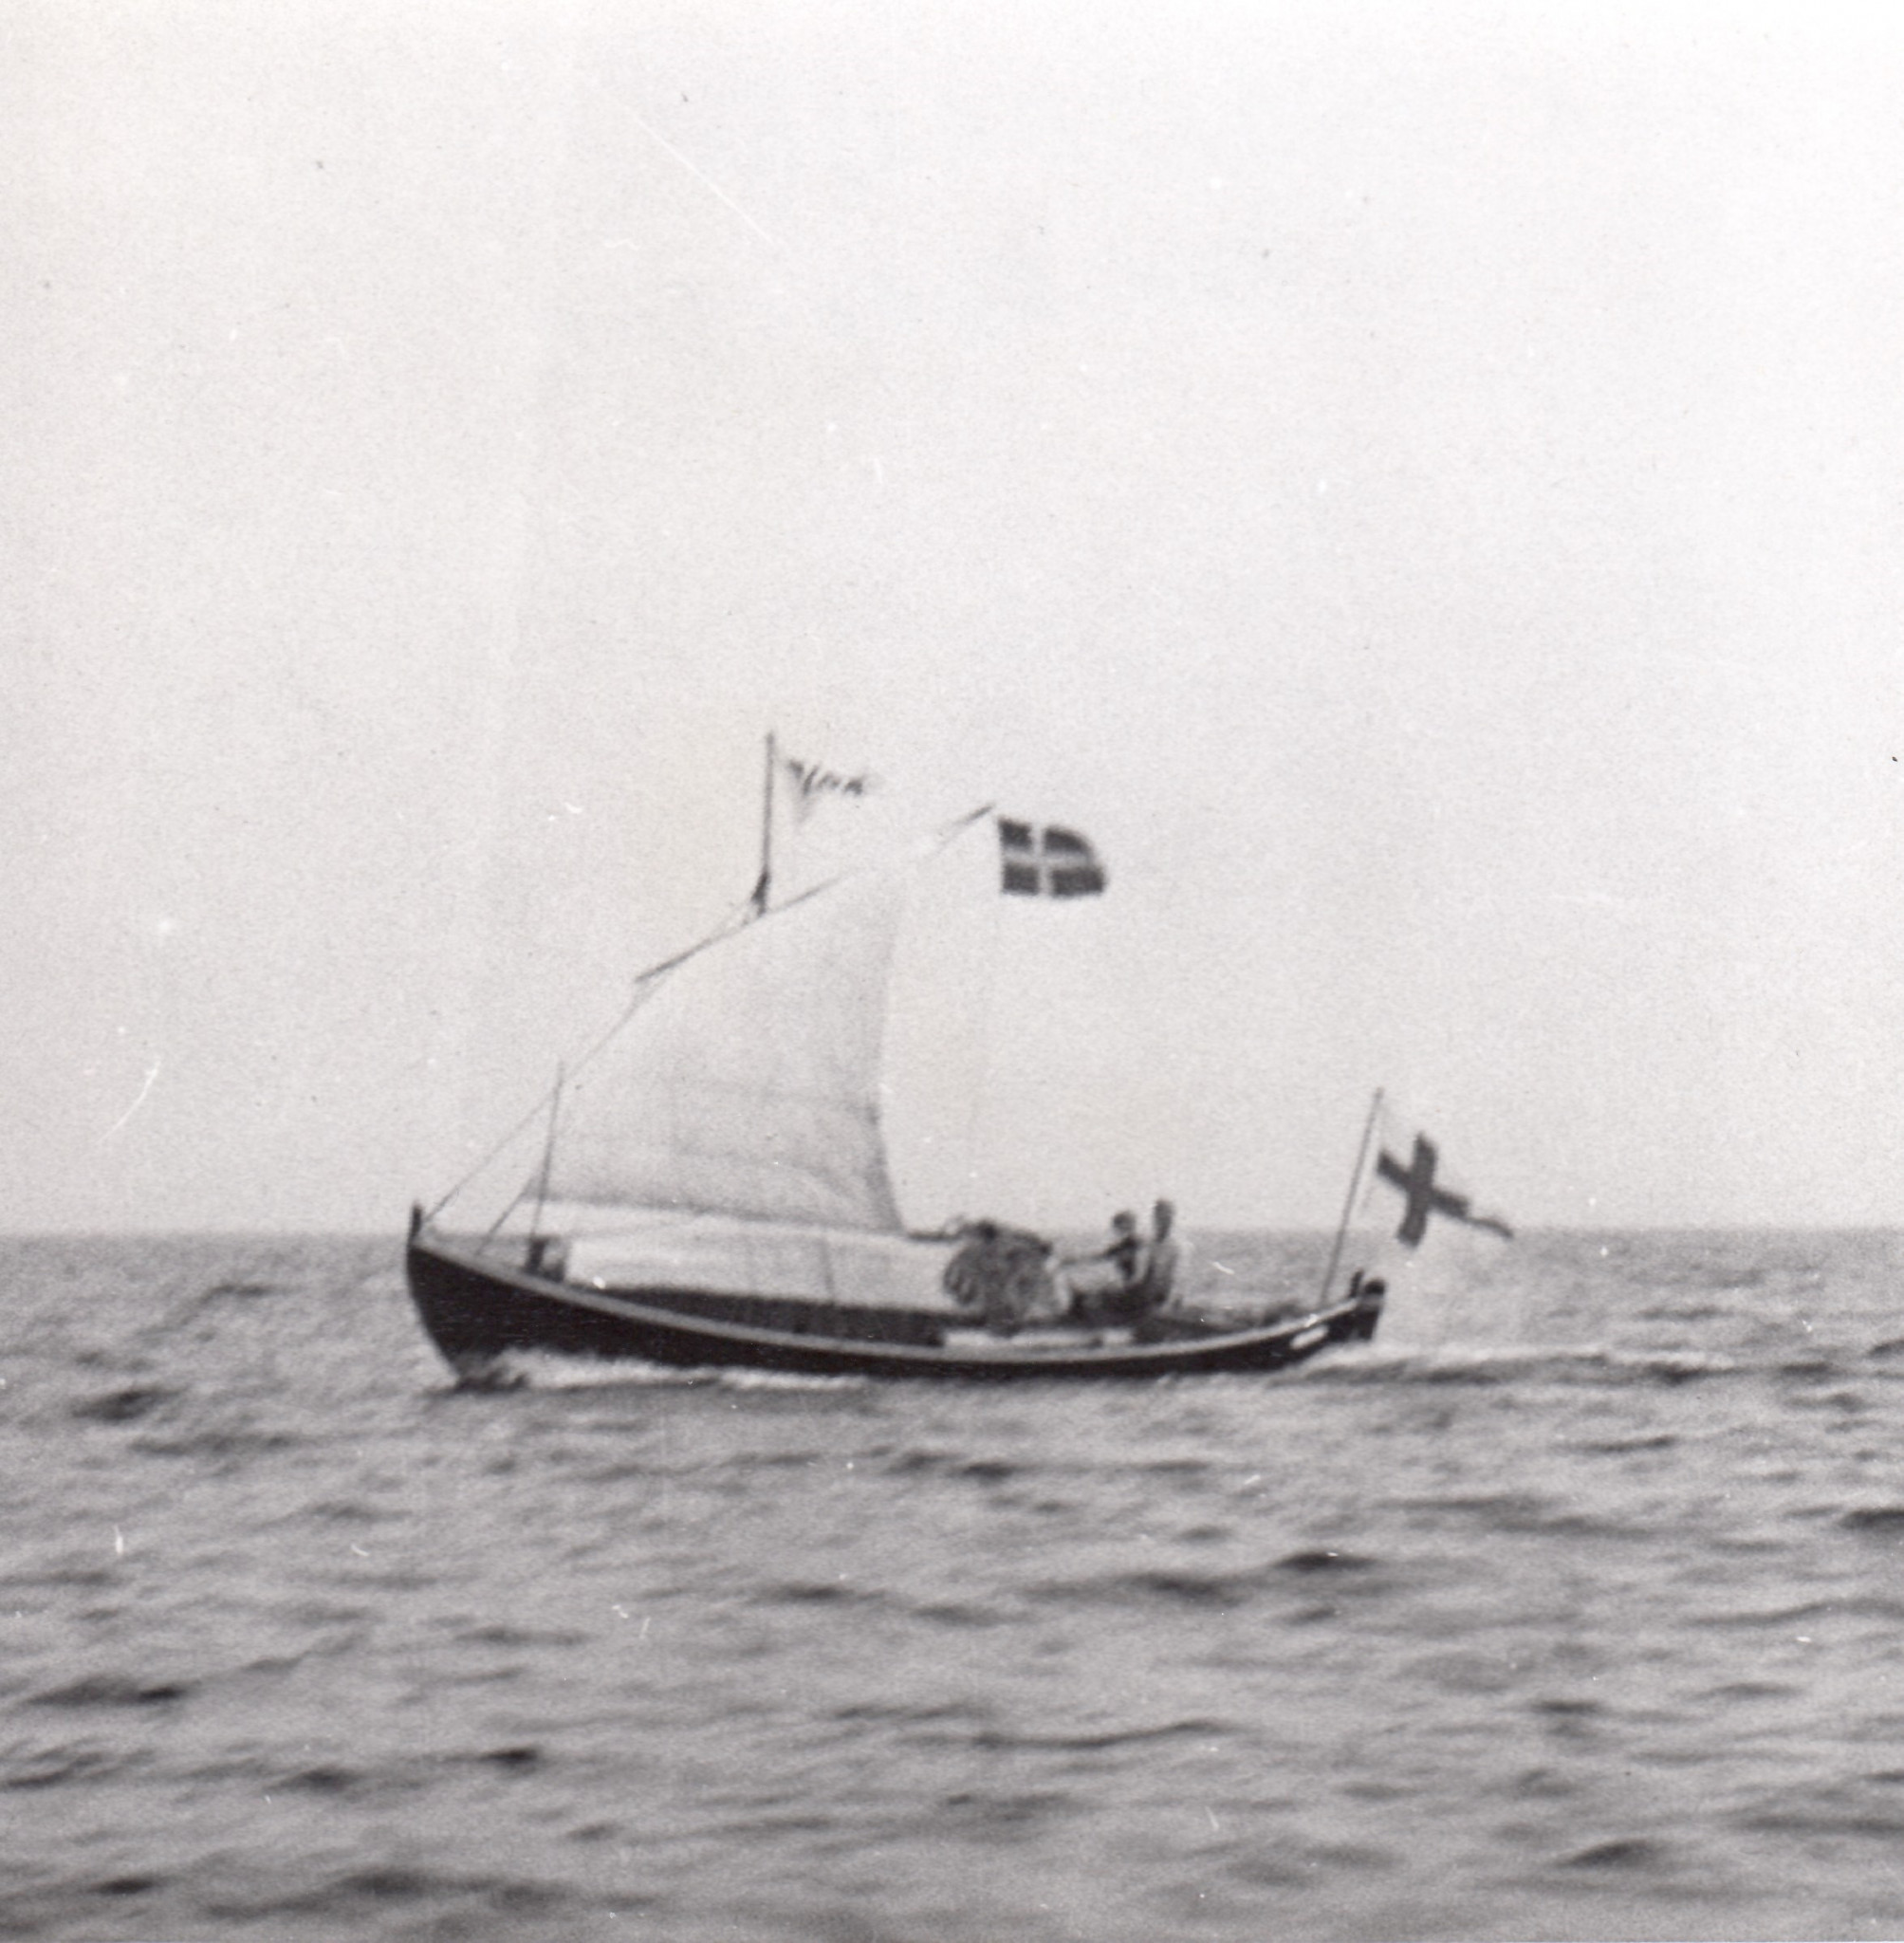 Story of sailing expedition to raise Faroe Islands flag at 1952 Olympic Games revealed